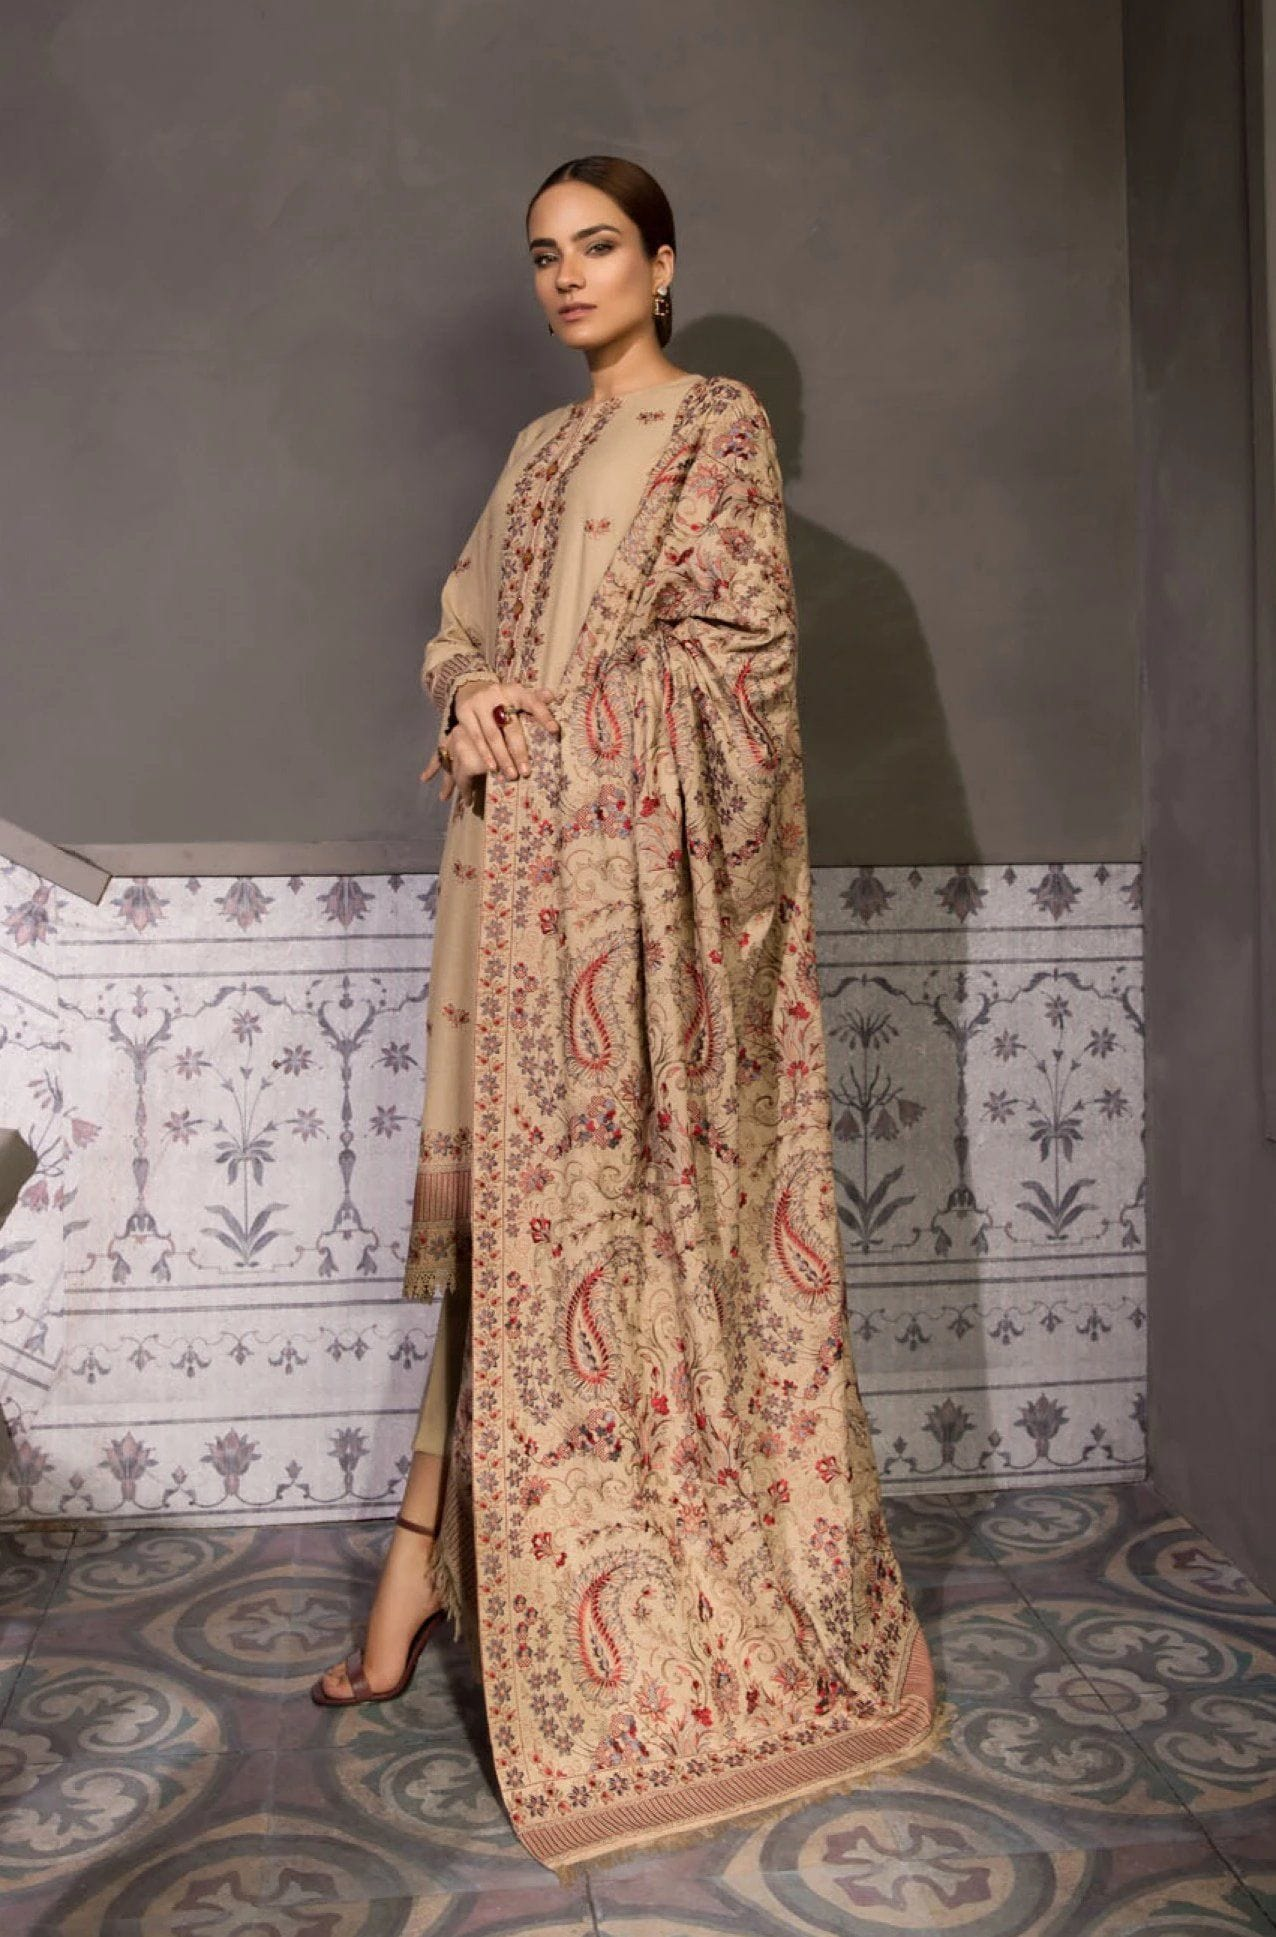 Beige Rose - Heavy Embroidered Karandi Lawn Beige Shawl - gracestore.pk